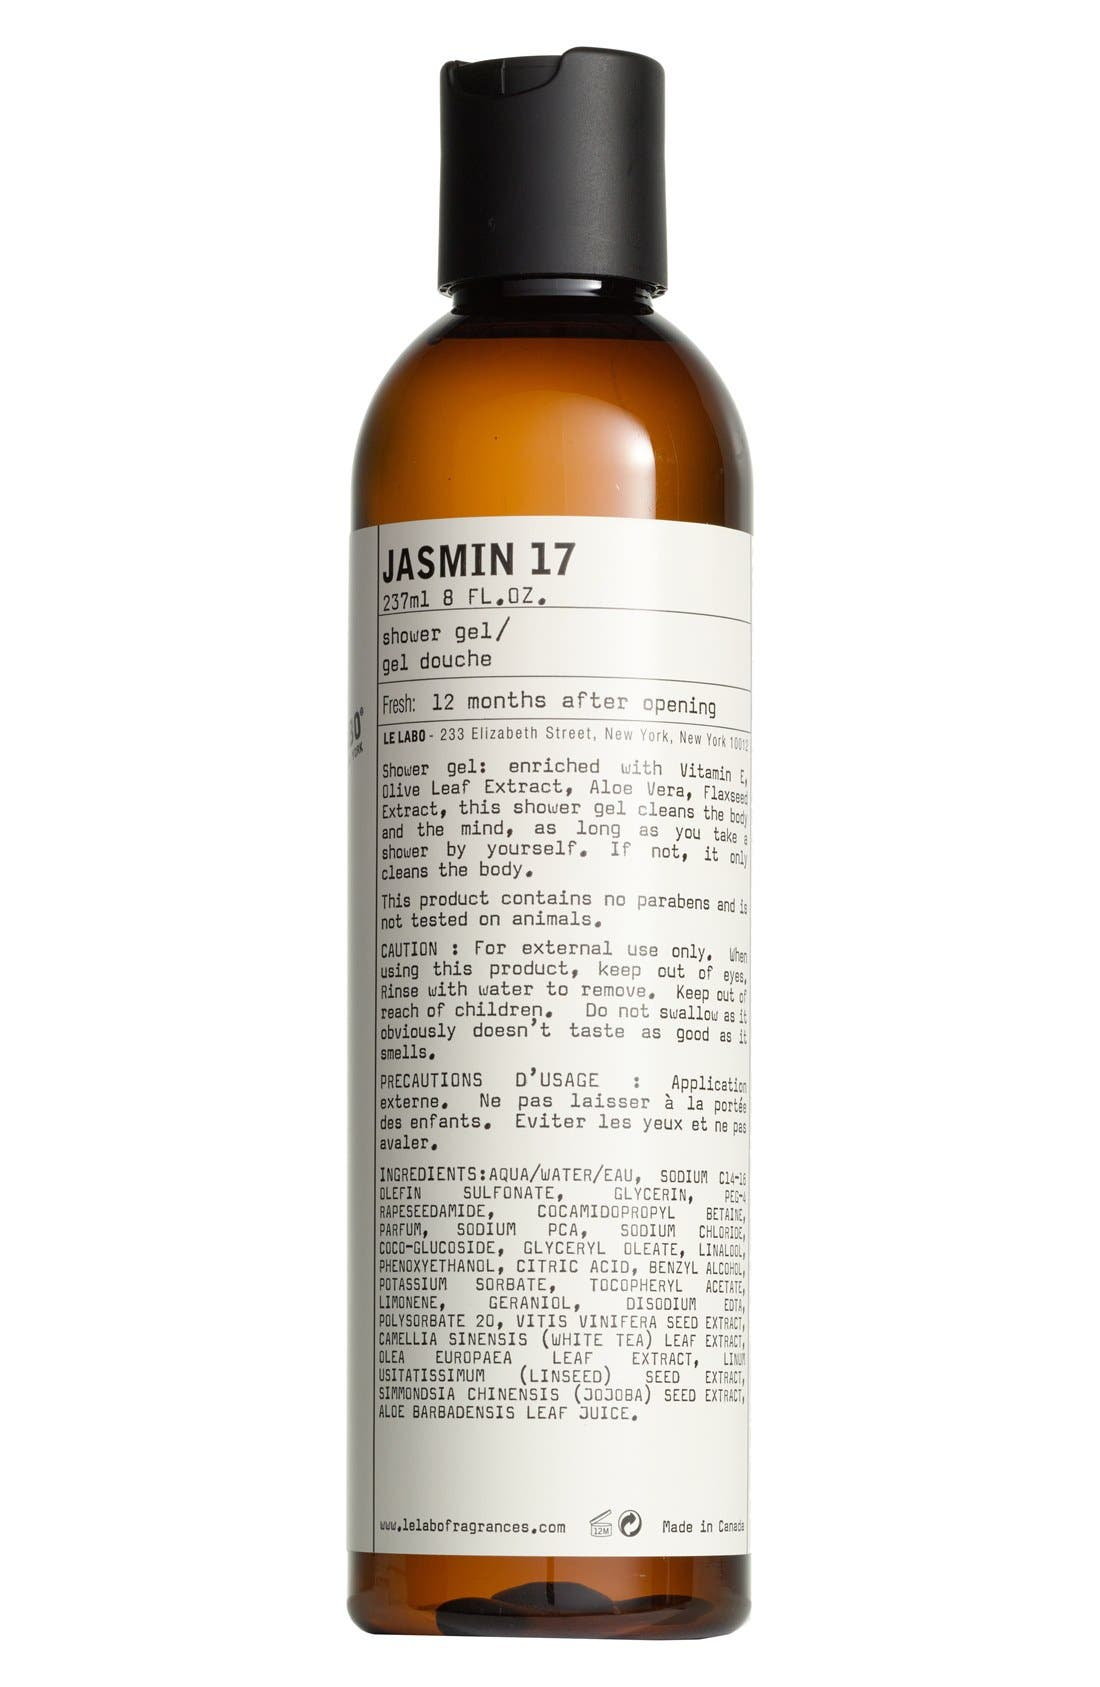 Le Labo 'Jasmin 17' Shower Gel